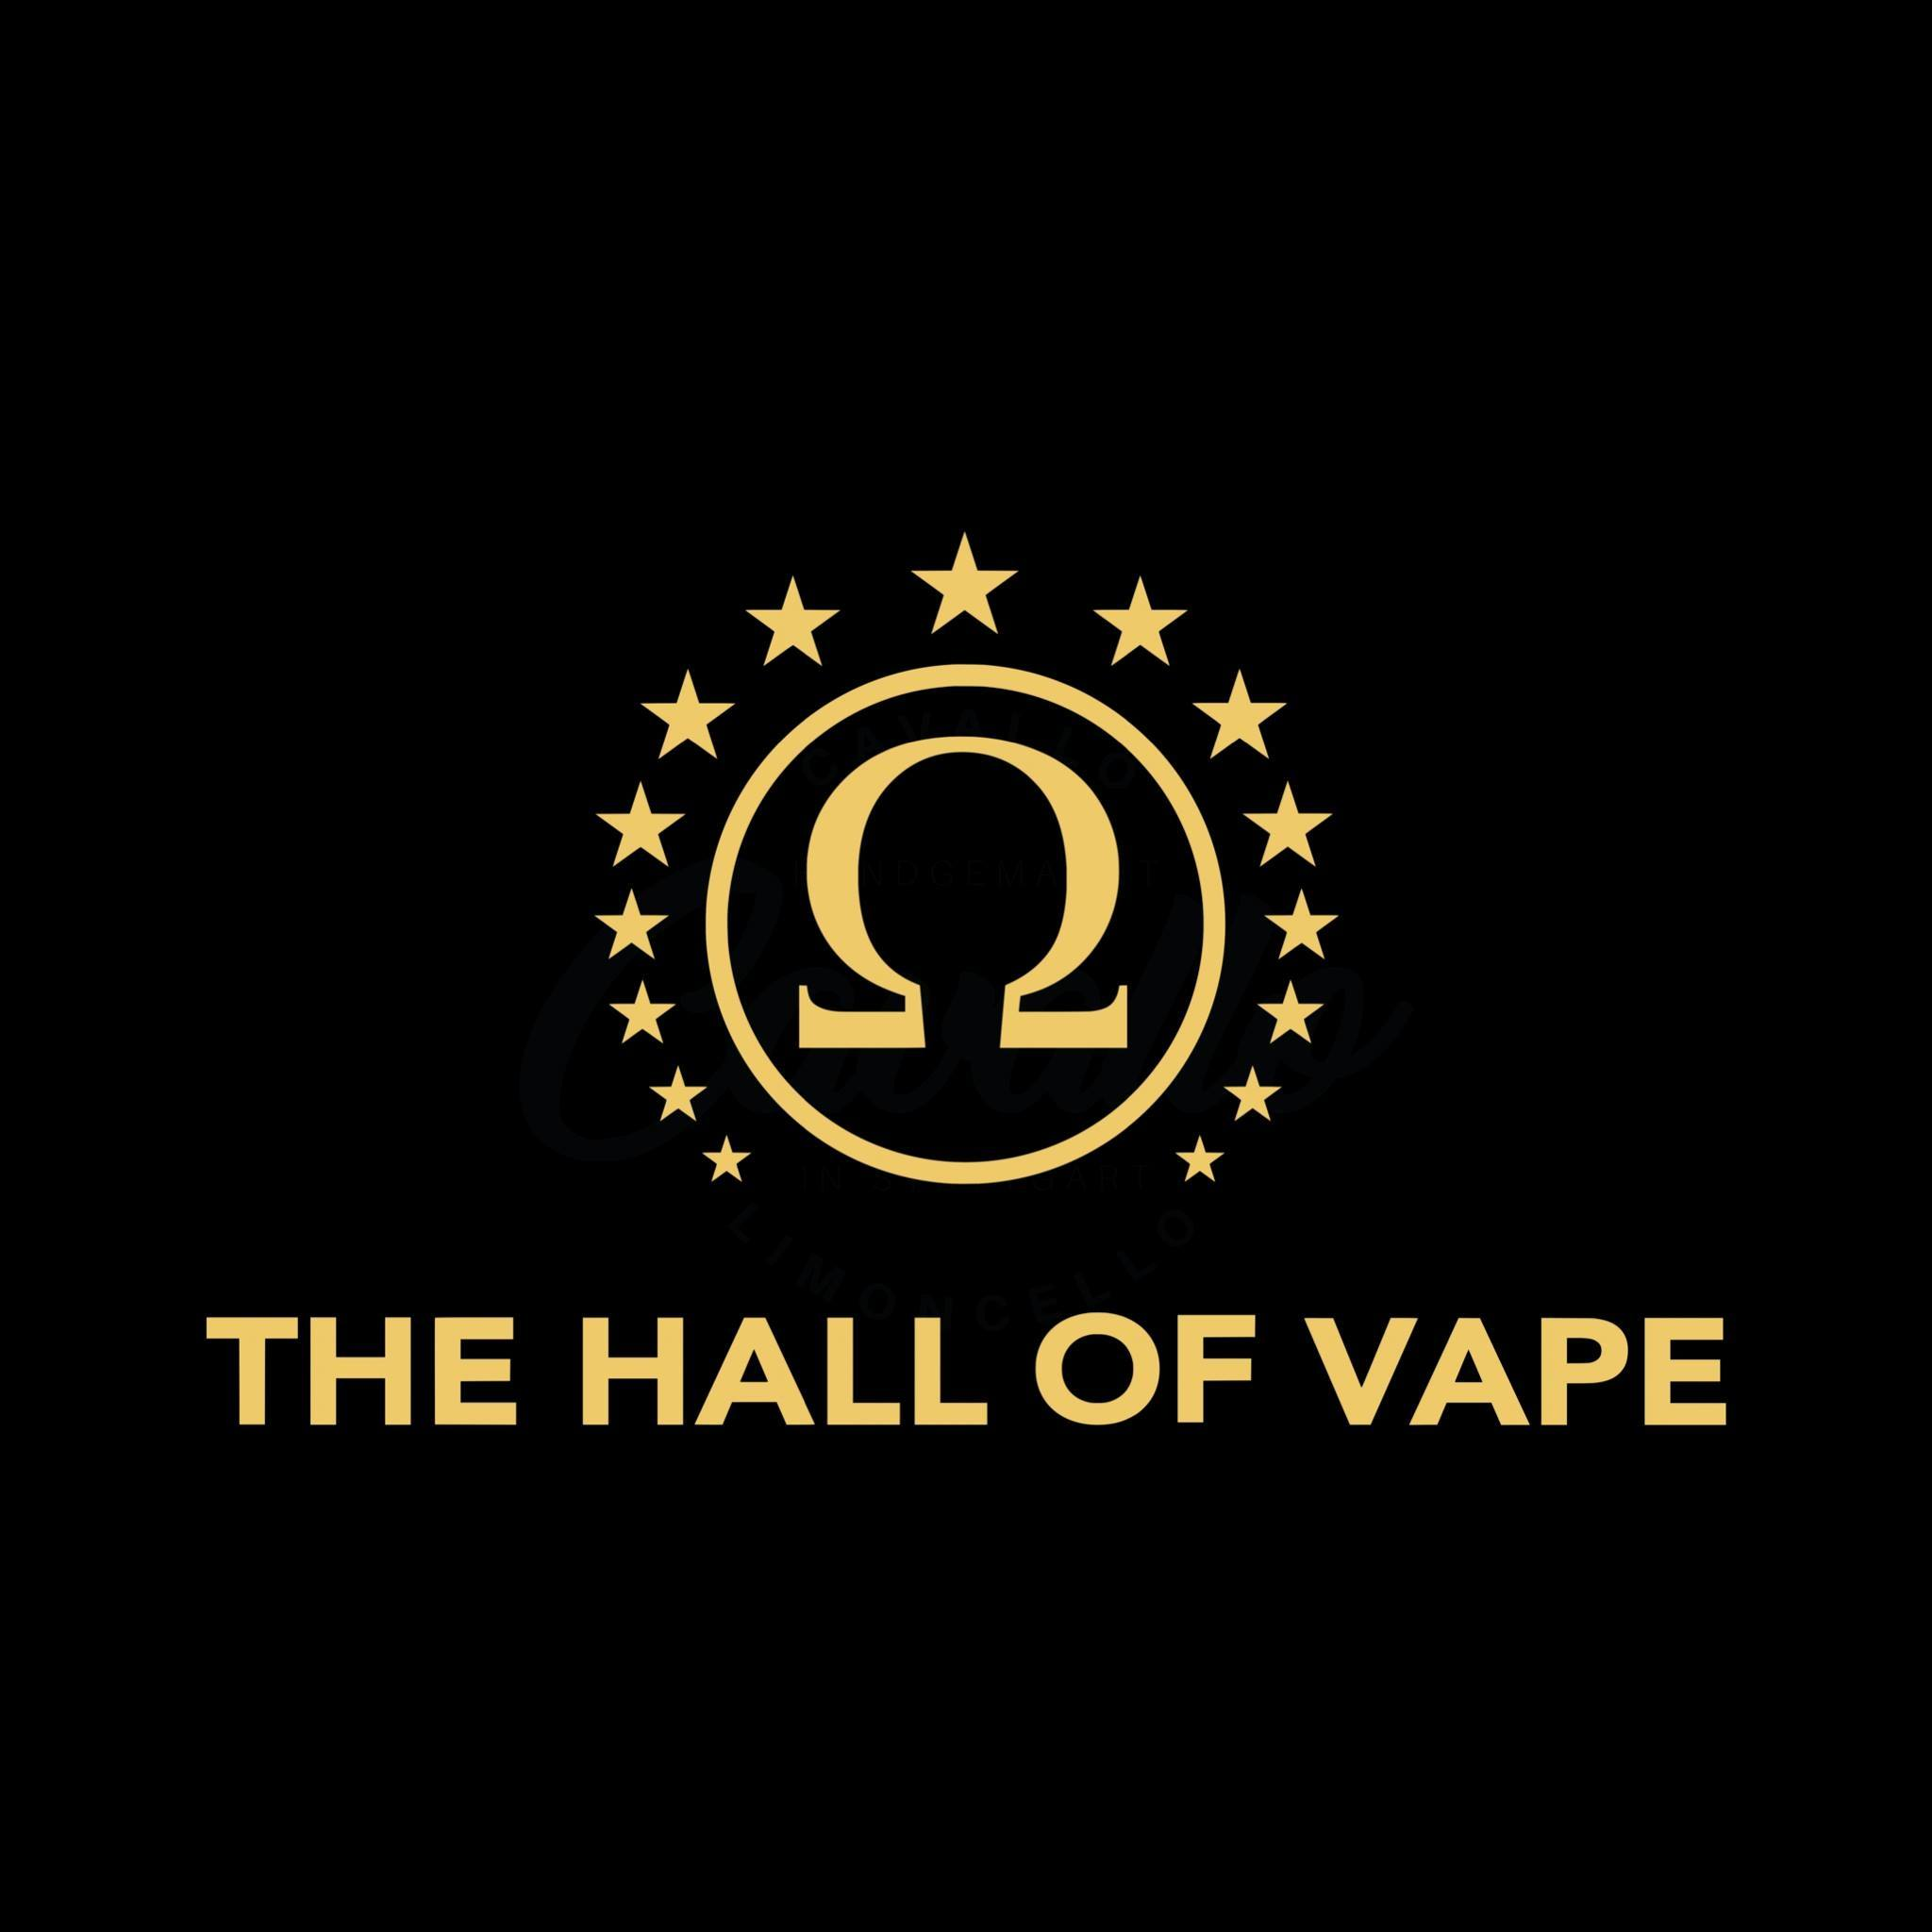 the hall of vape 2019 stuttgart